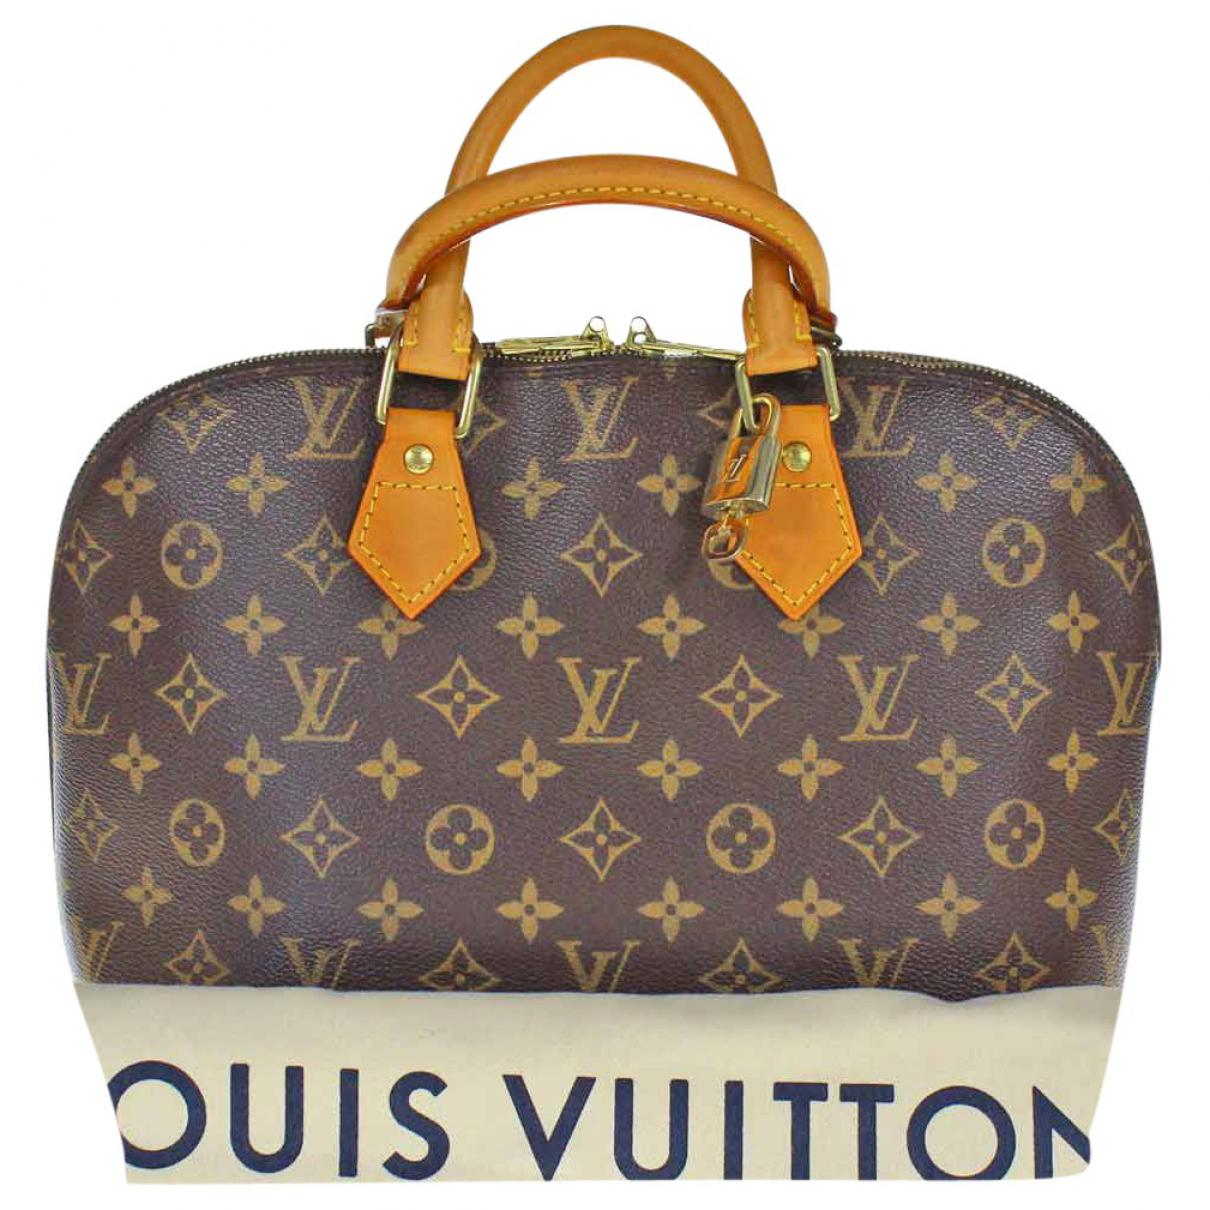 Pre-owned - Alma cloth handbag Louis Vuitton f2GKXWR